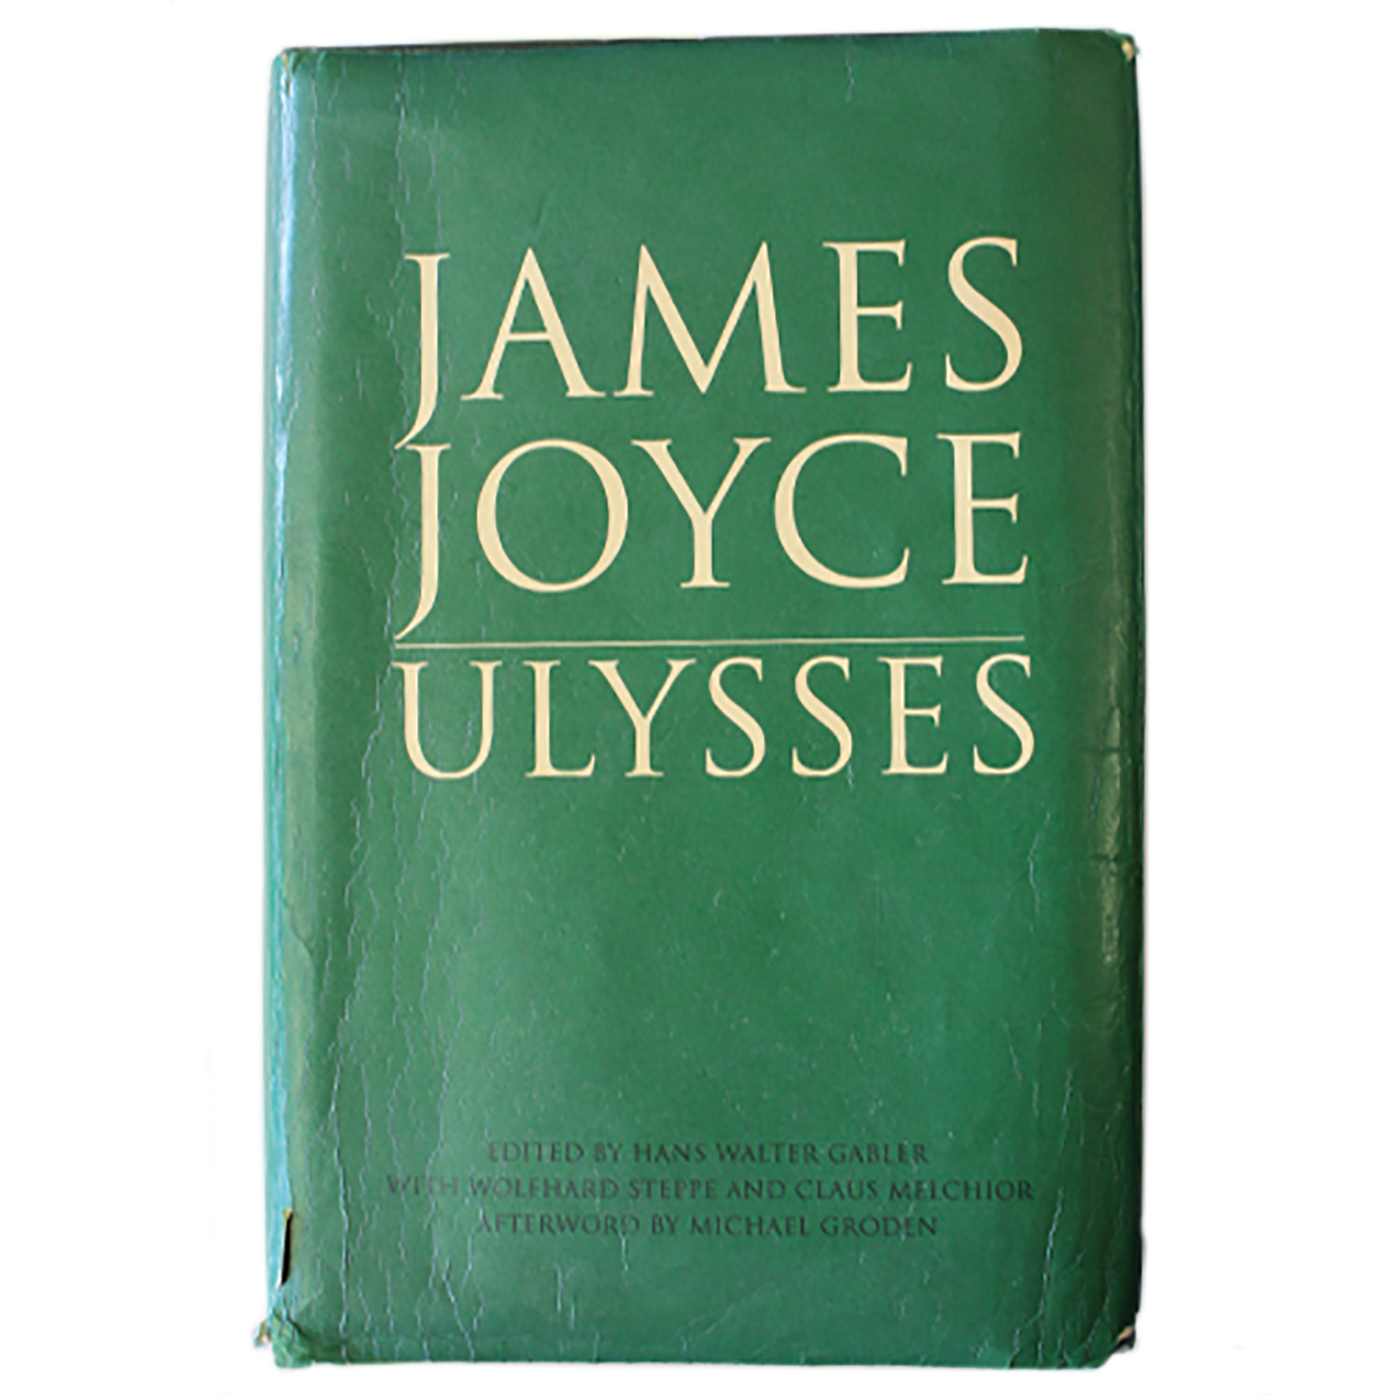 Dust jacket of Gabler (ed) Joyce Ulysses via James Joyce centre website